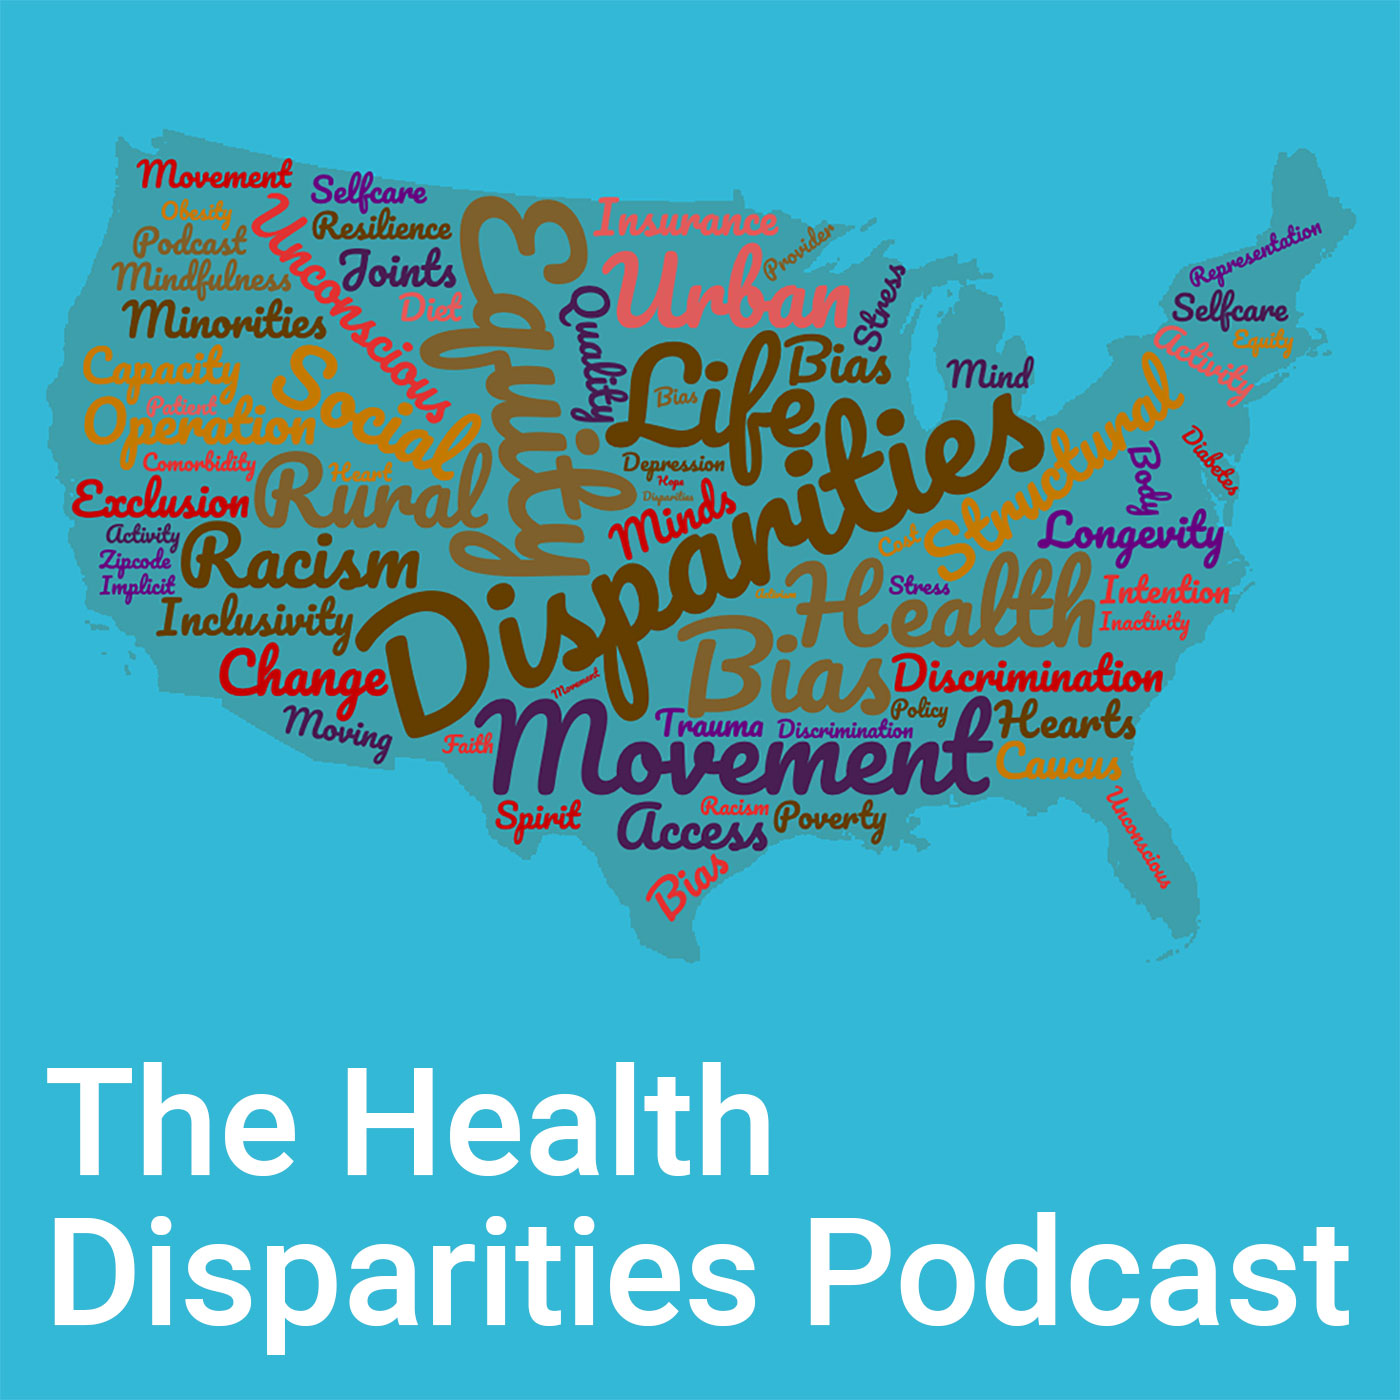 The Health Disparities Podcast podcast show image